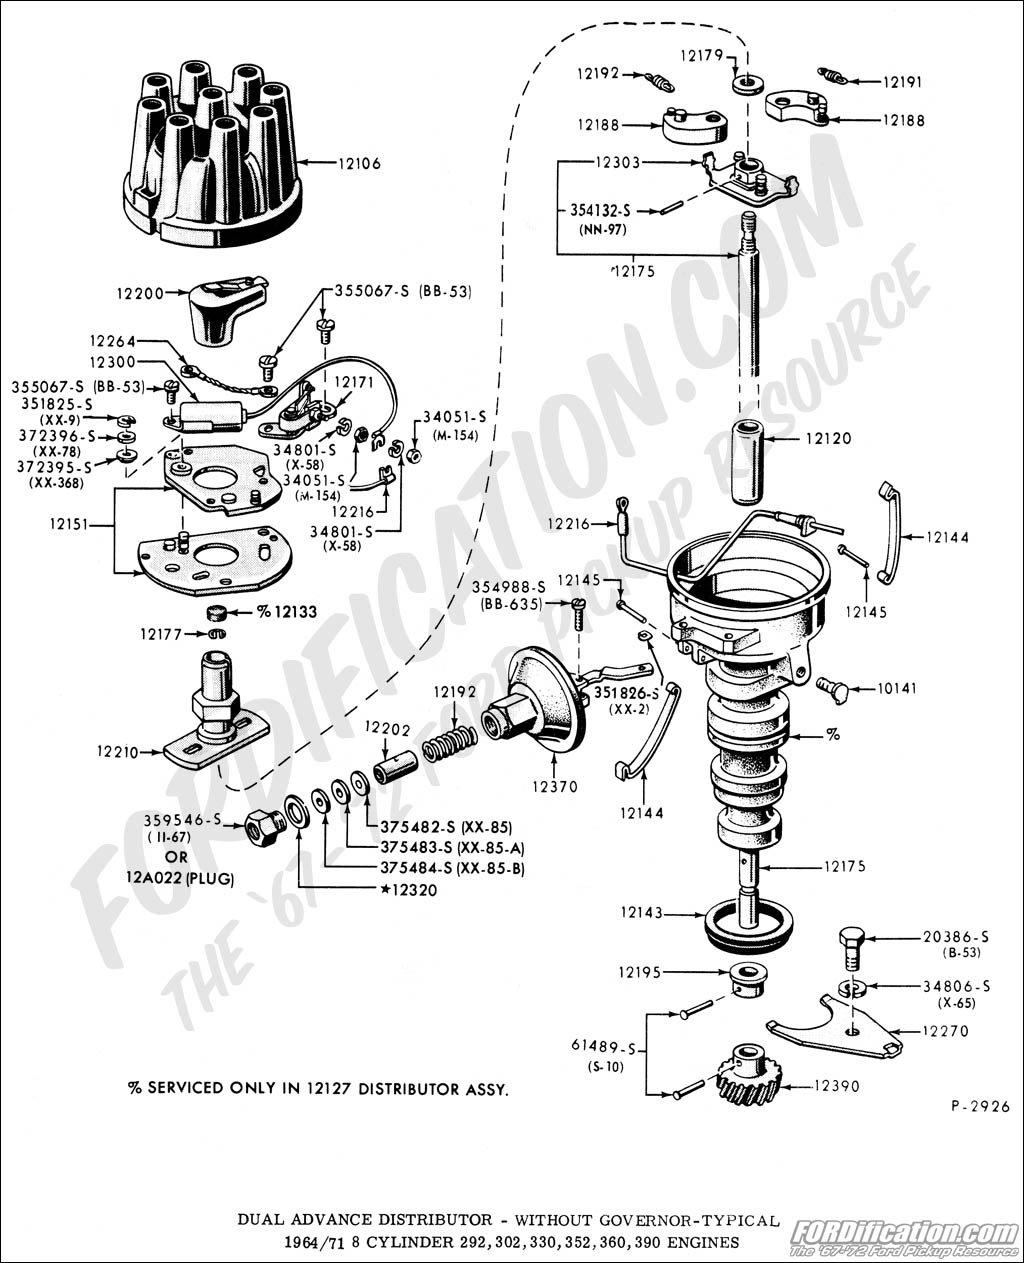 1969 ford 302 engine diagram ford truck technical drawings and schematics - section i ... 1990 ford 302 engine diagram #15